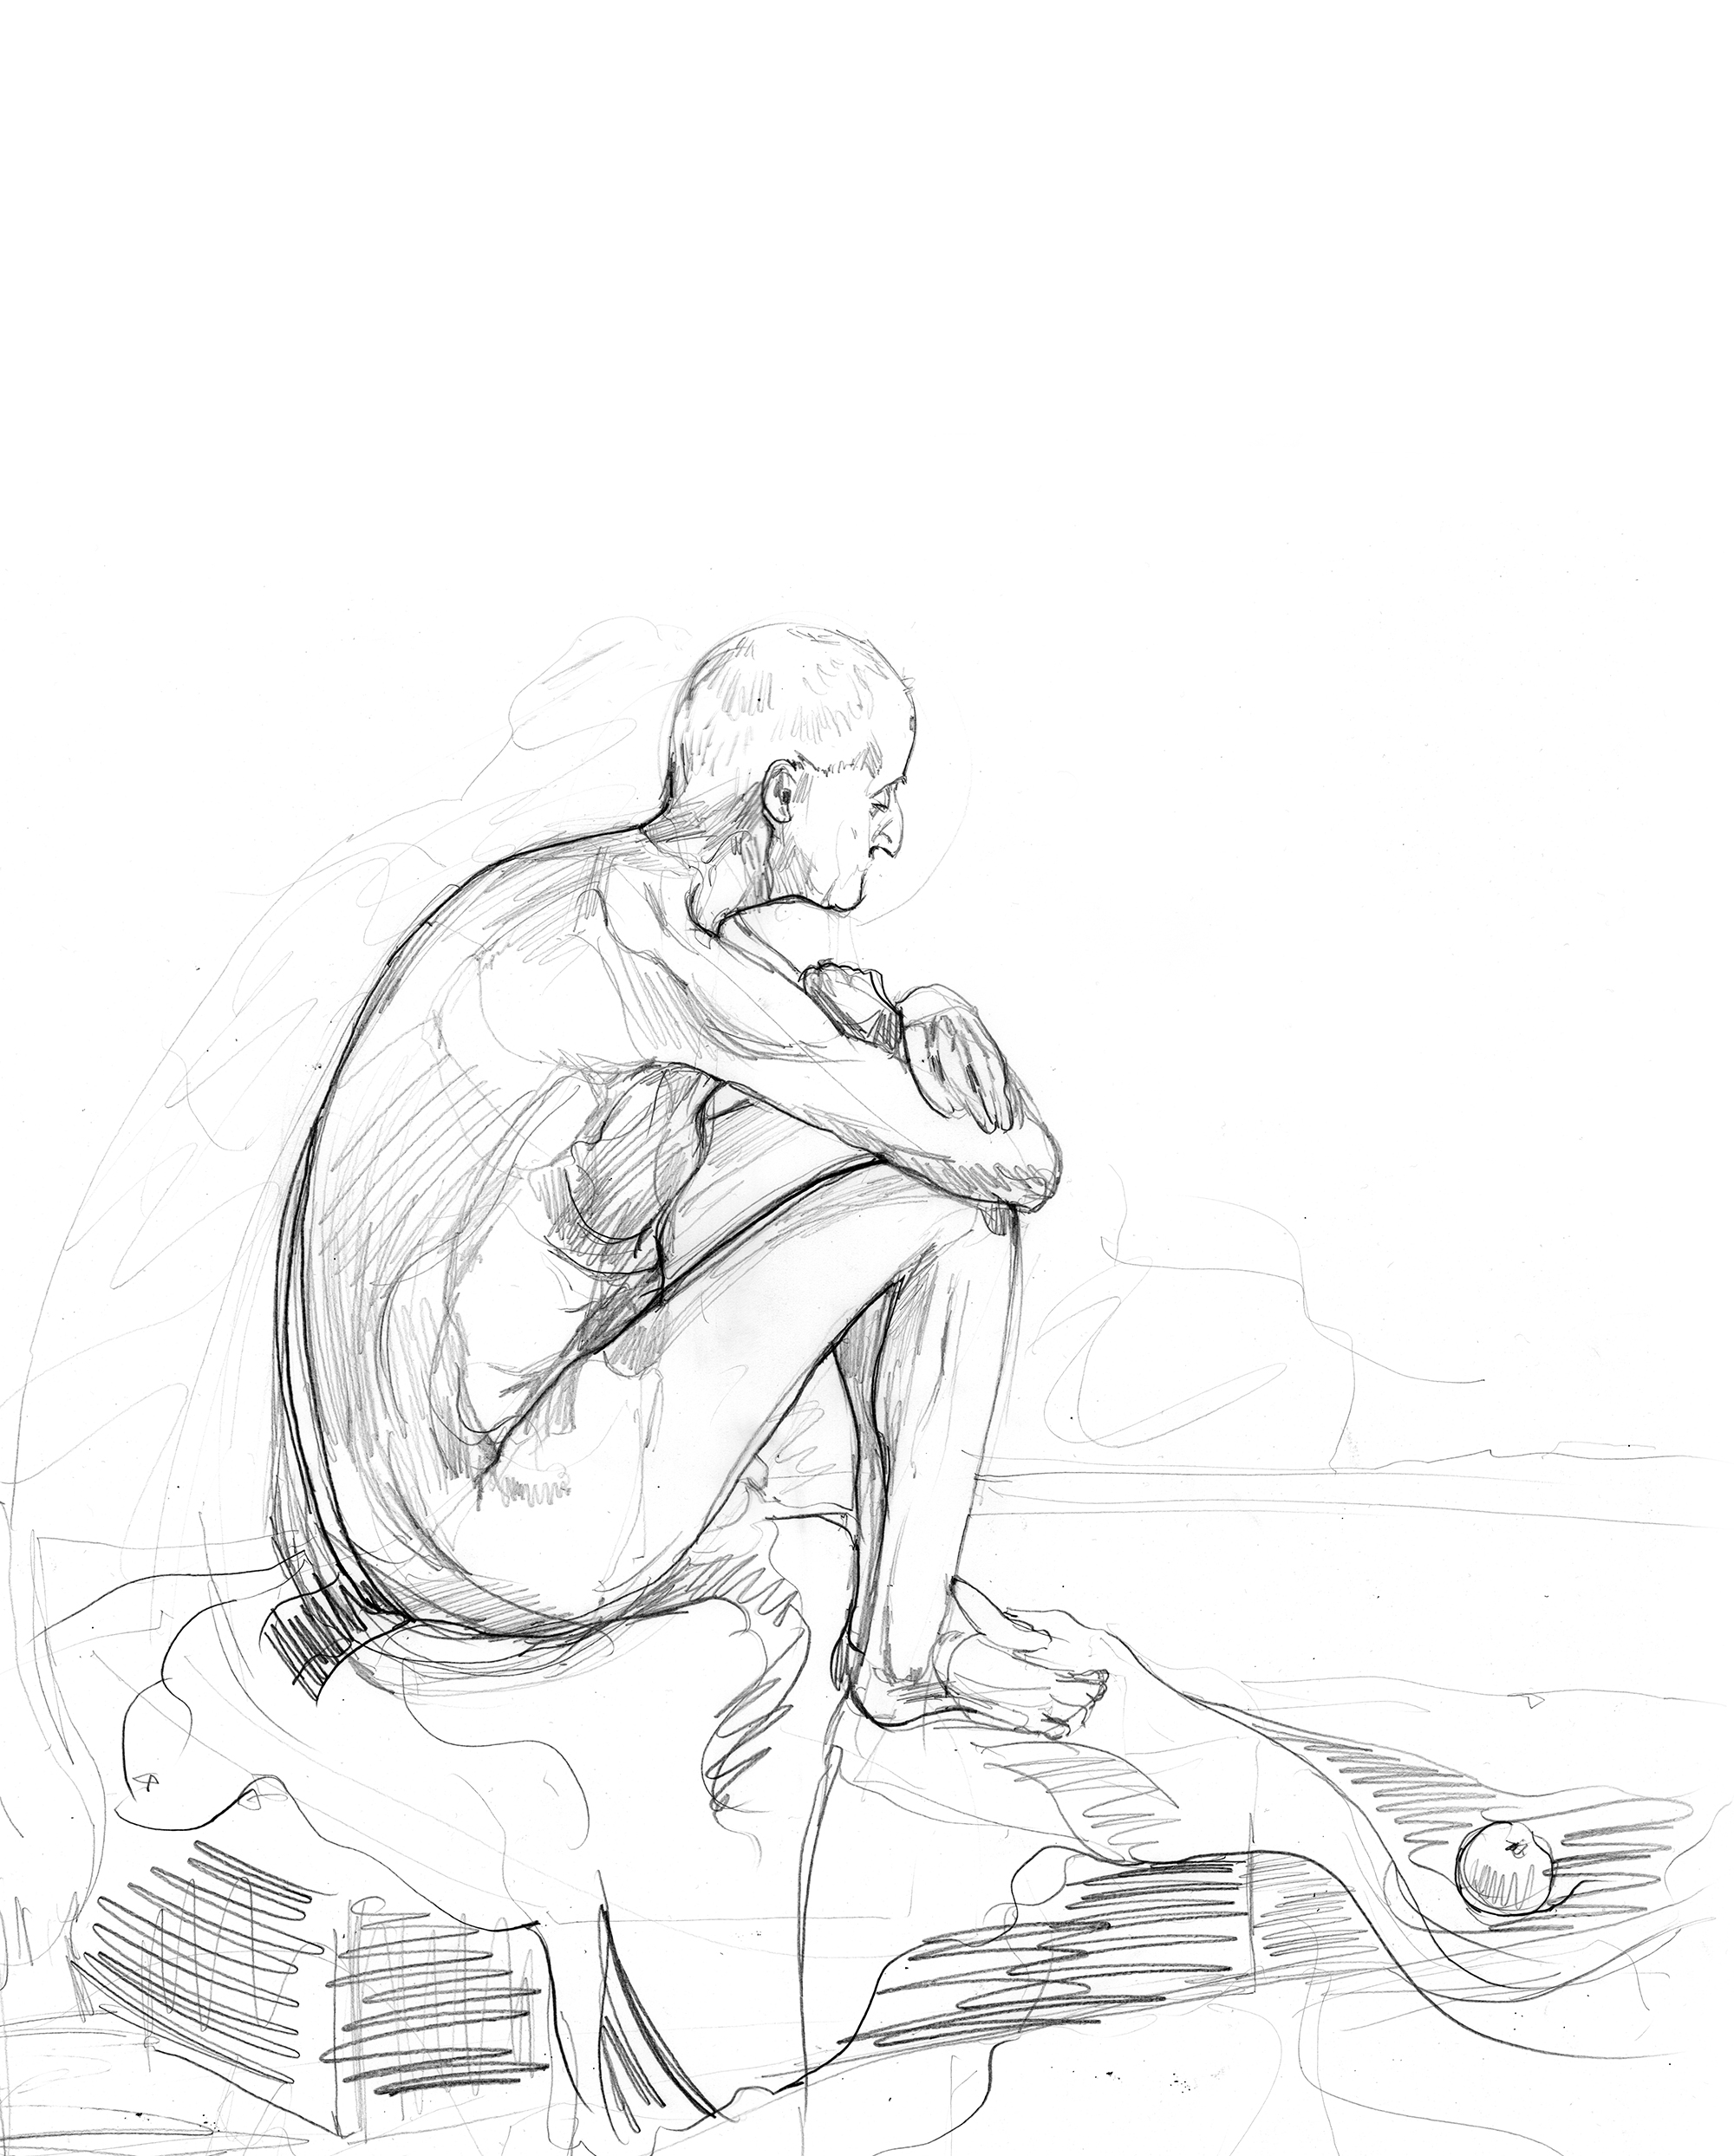 Life drawing-Sophia O'Connor-small.jpg